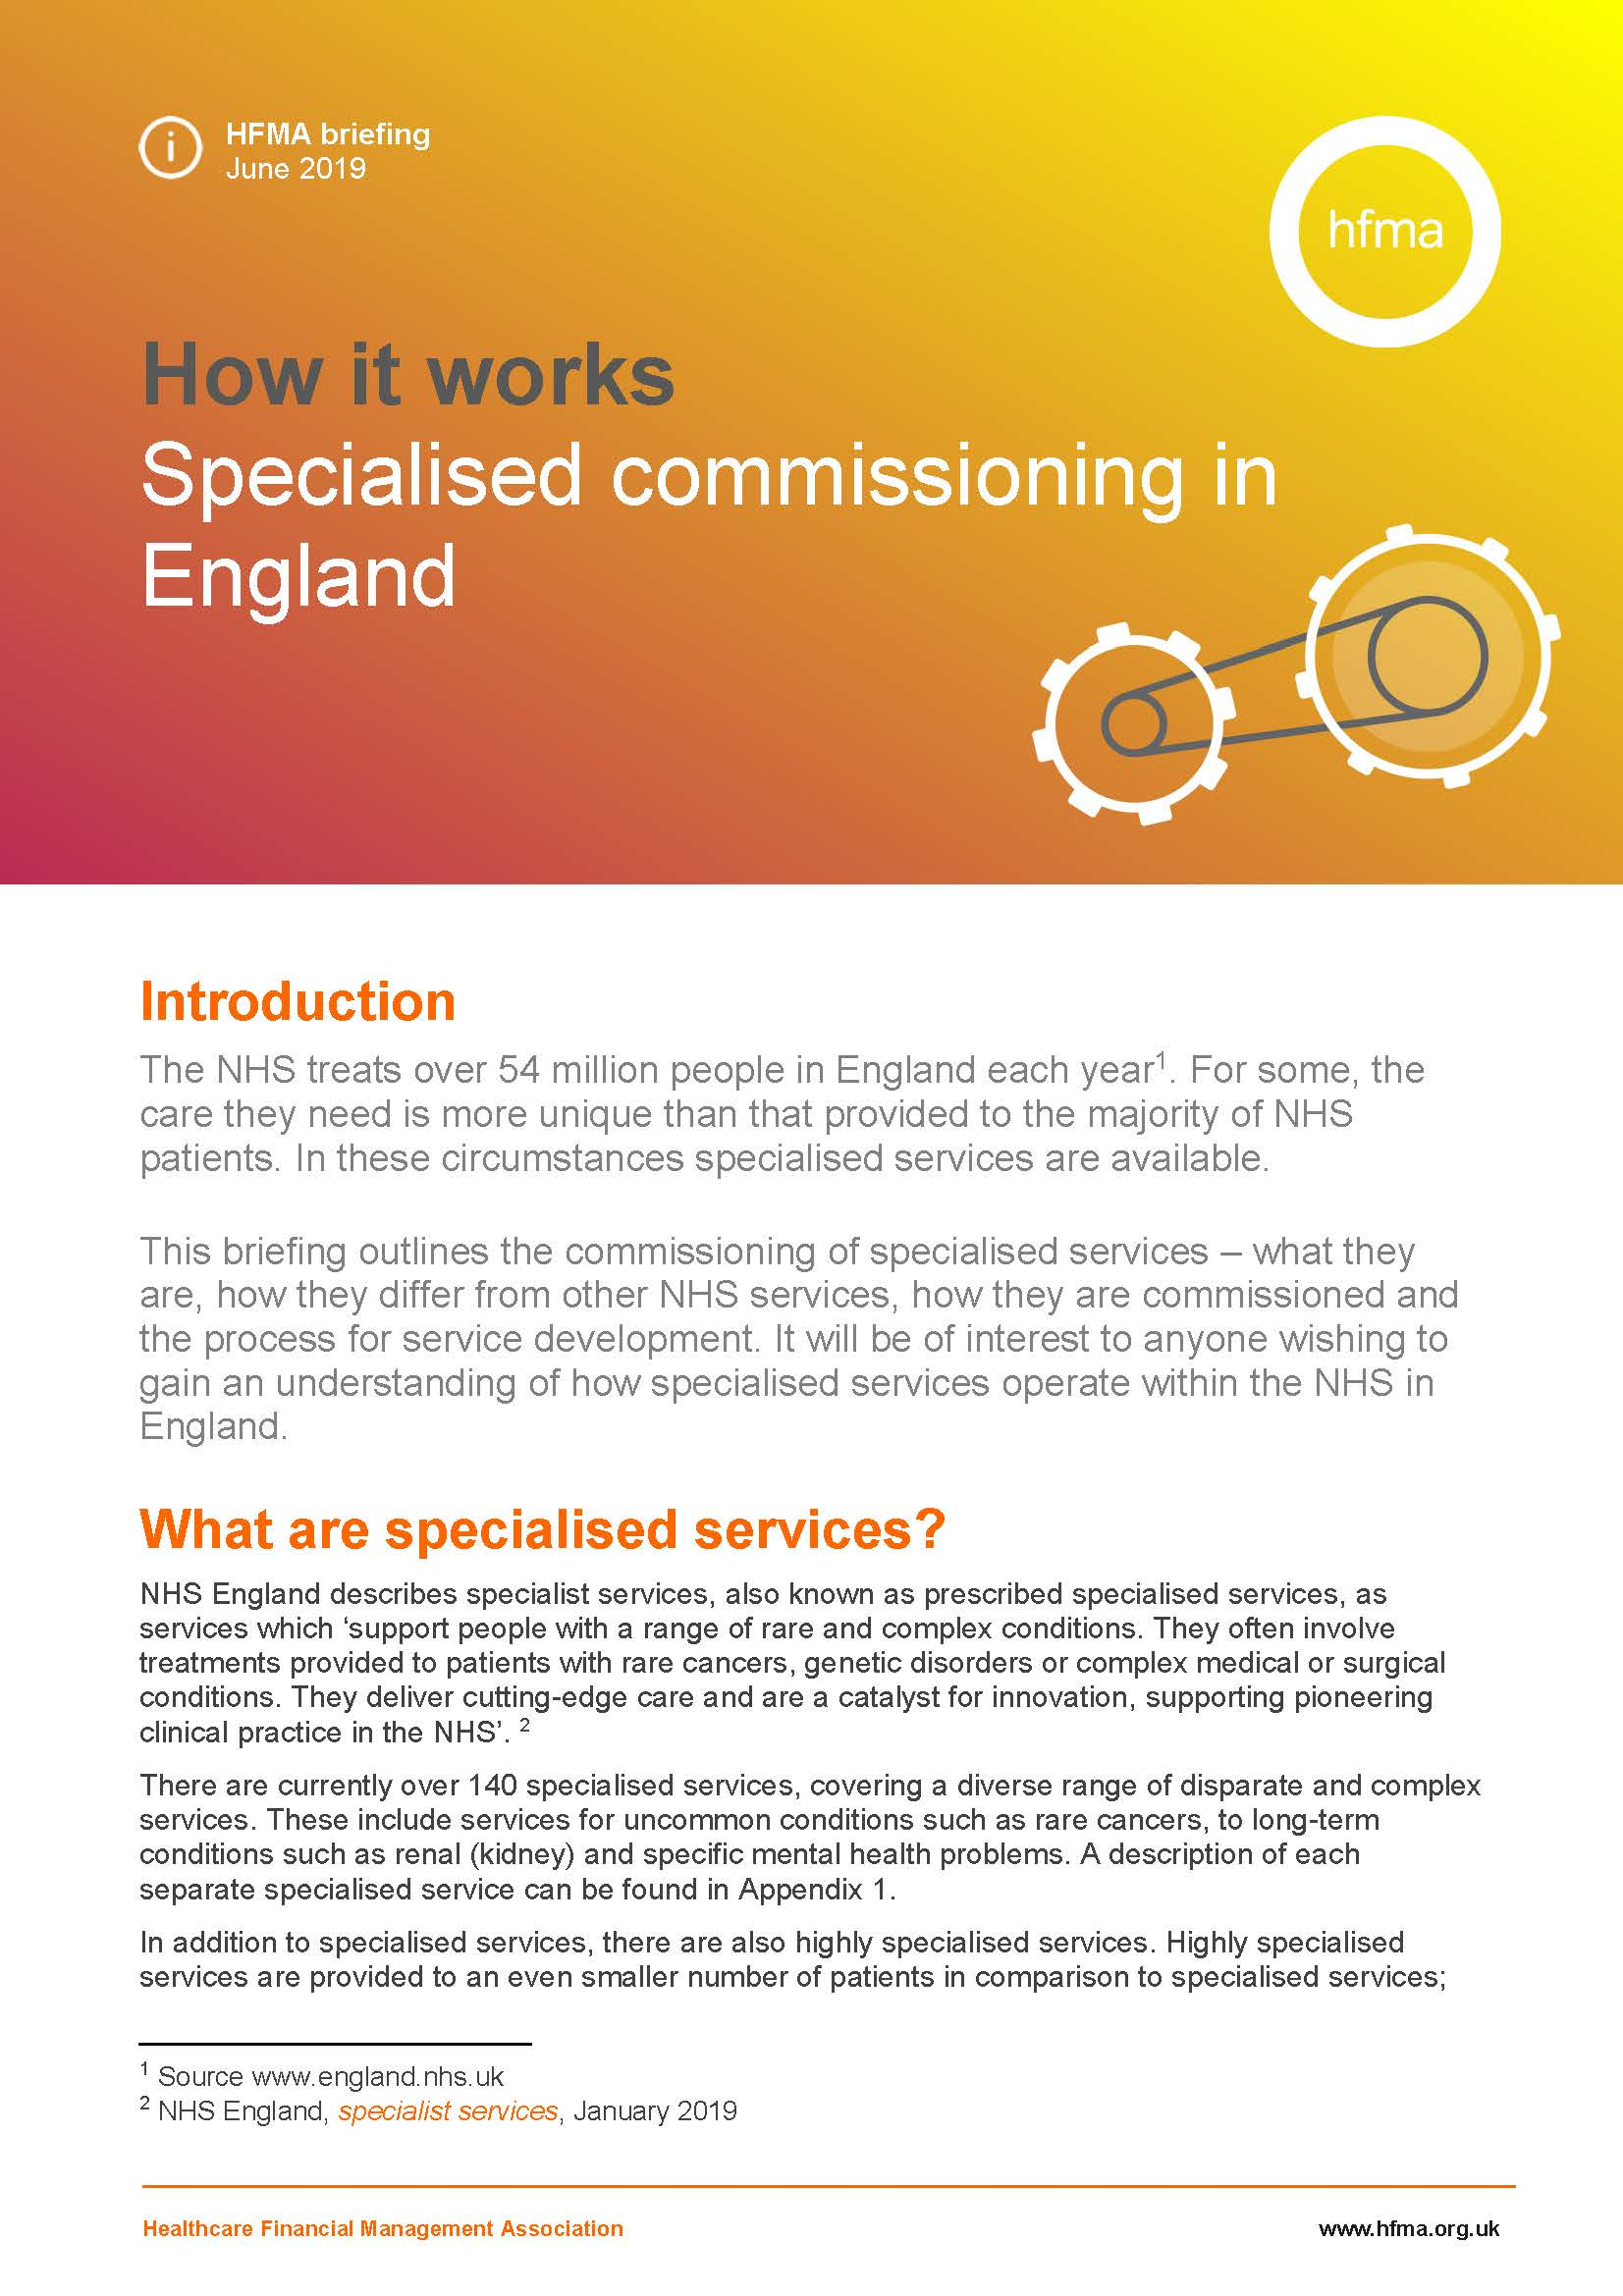 How it works – Specialised commissioning in England